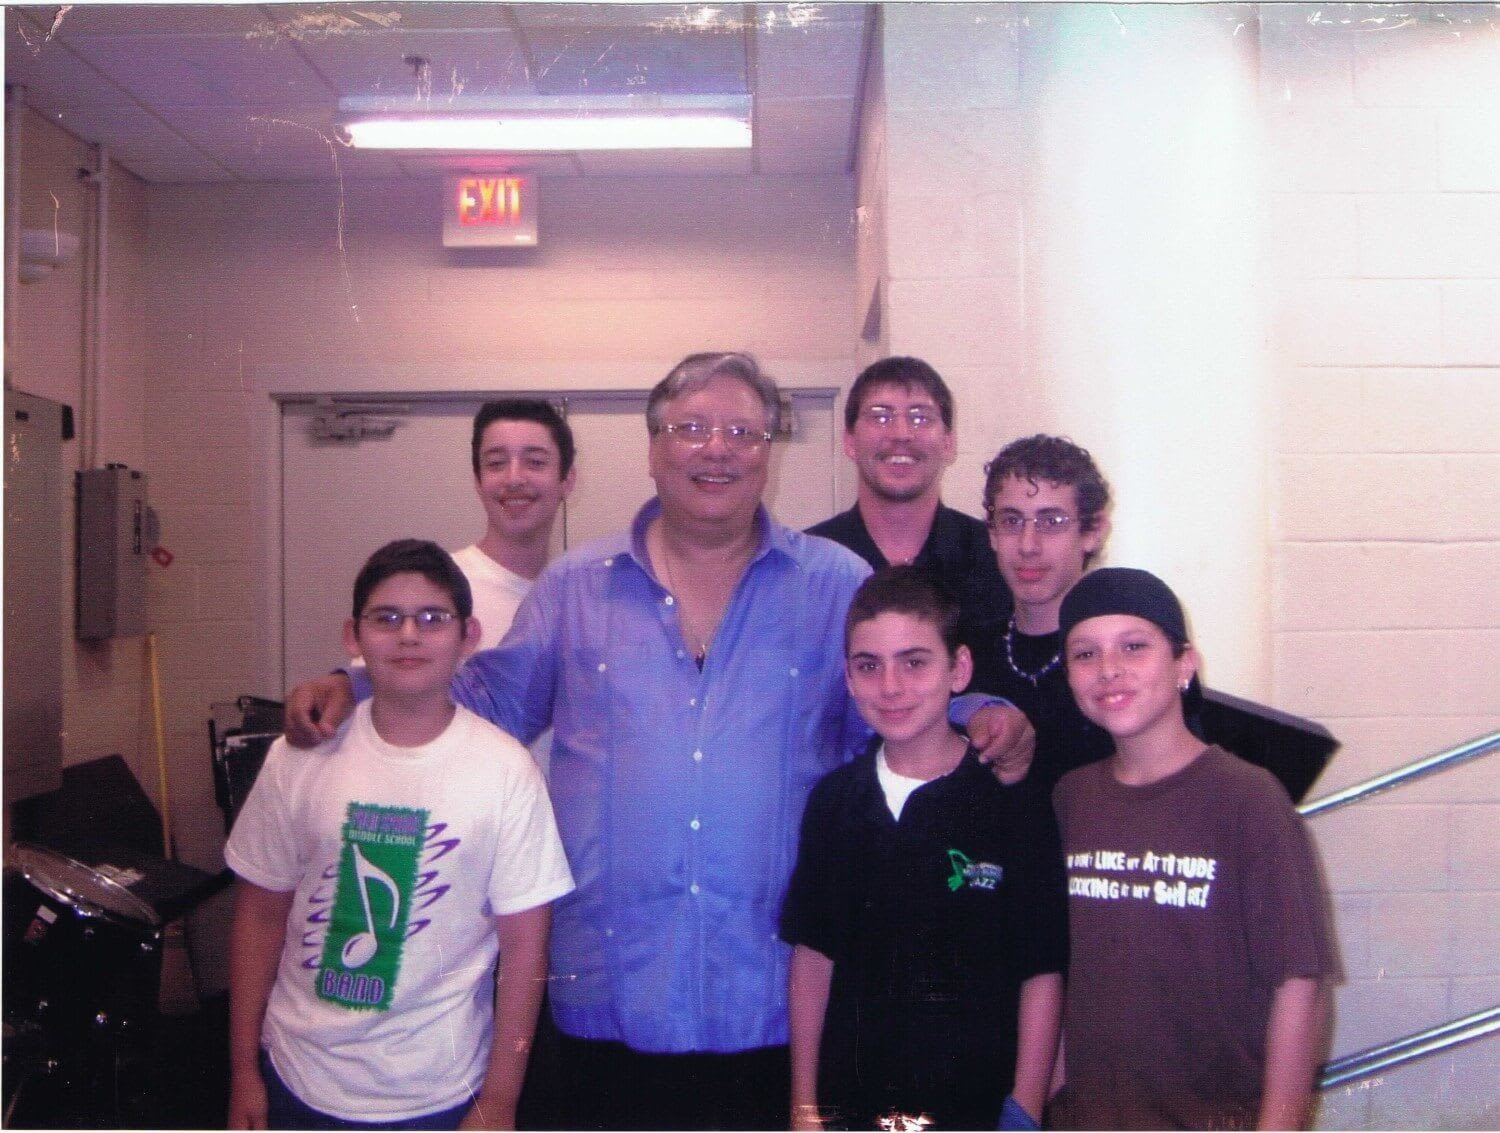 Picture of young boys around Arturo Sandoval